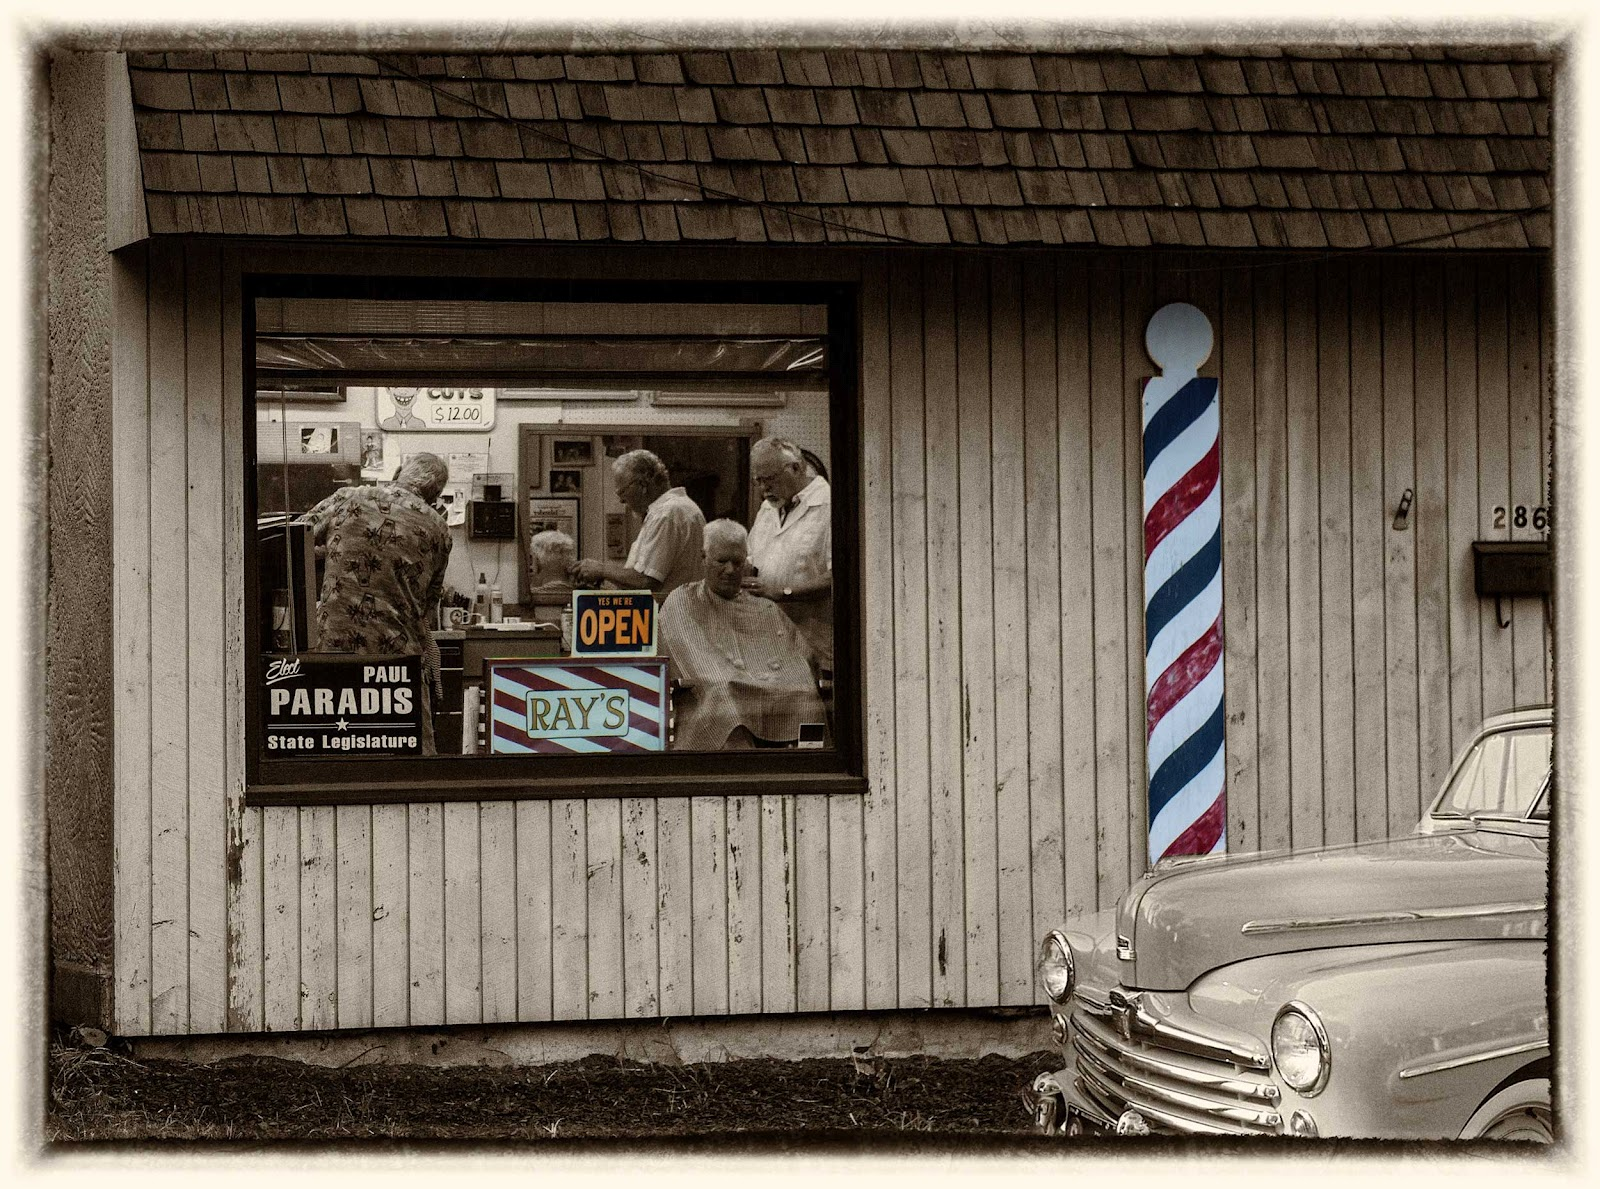 Man Cave Barber Oran Park : Your shutter buddy s usa fall tour day acadia national